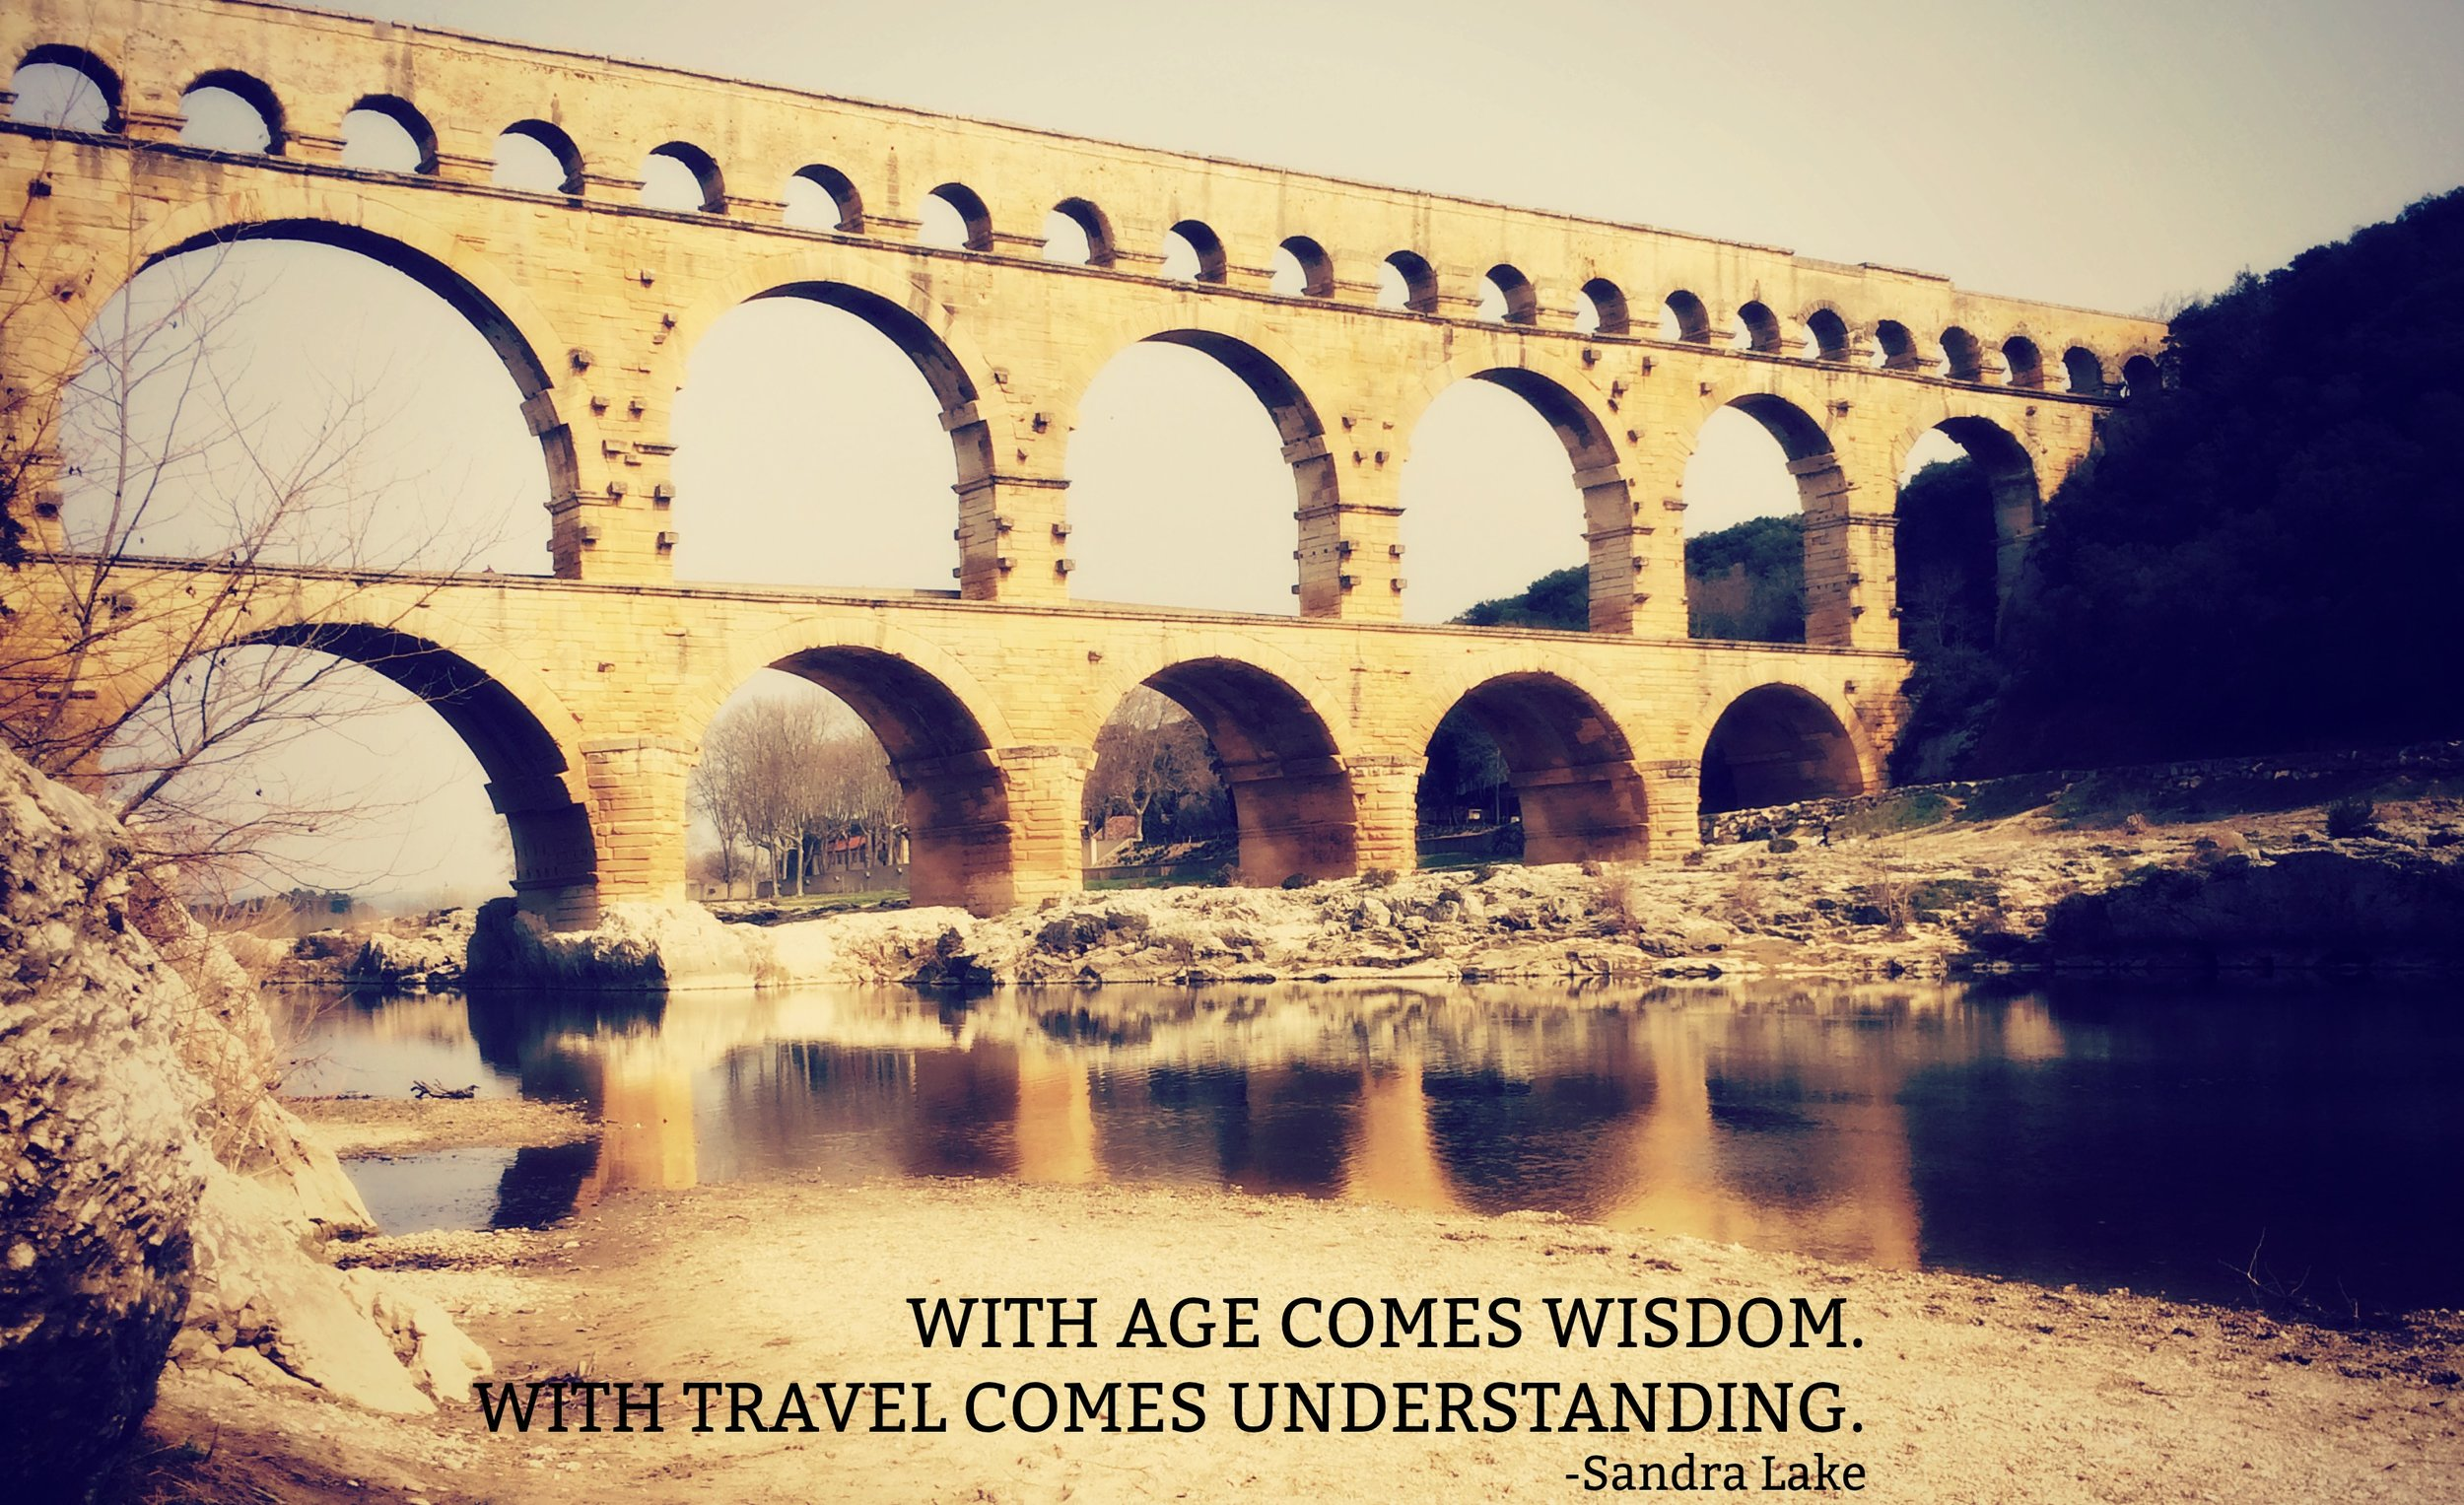 Vers-Pont-du-Gard, Southern France - Photo By: Anomilee